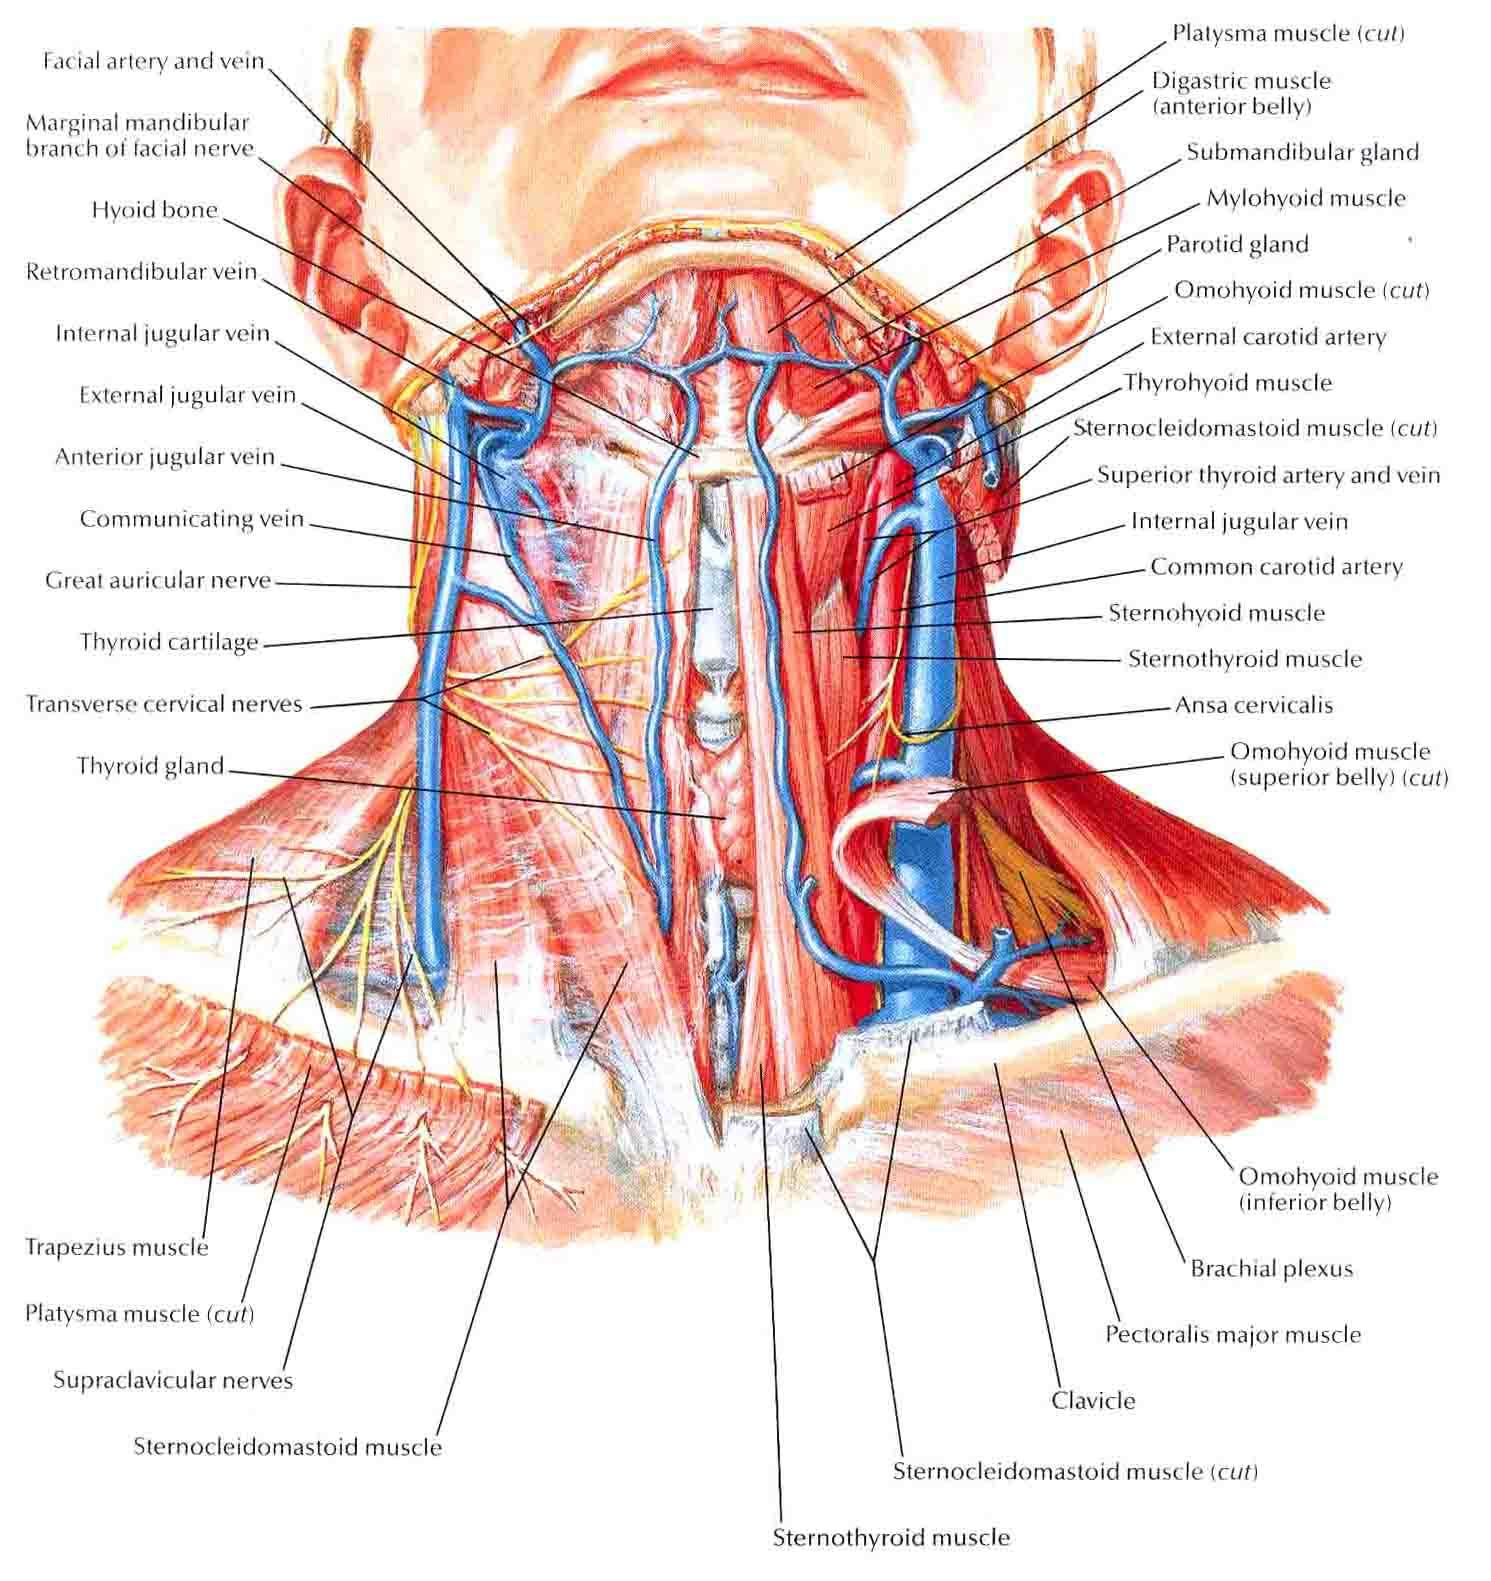 hight resolution of human neck muscles diagram human anatomy drawing pinterest rh pinterest com human body nerve system diagram nerves of the human arm